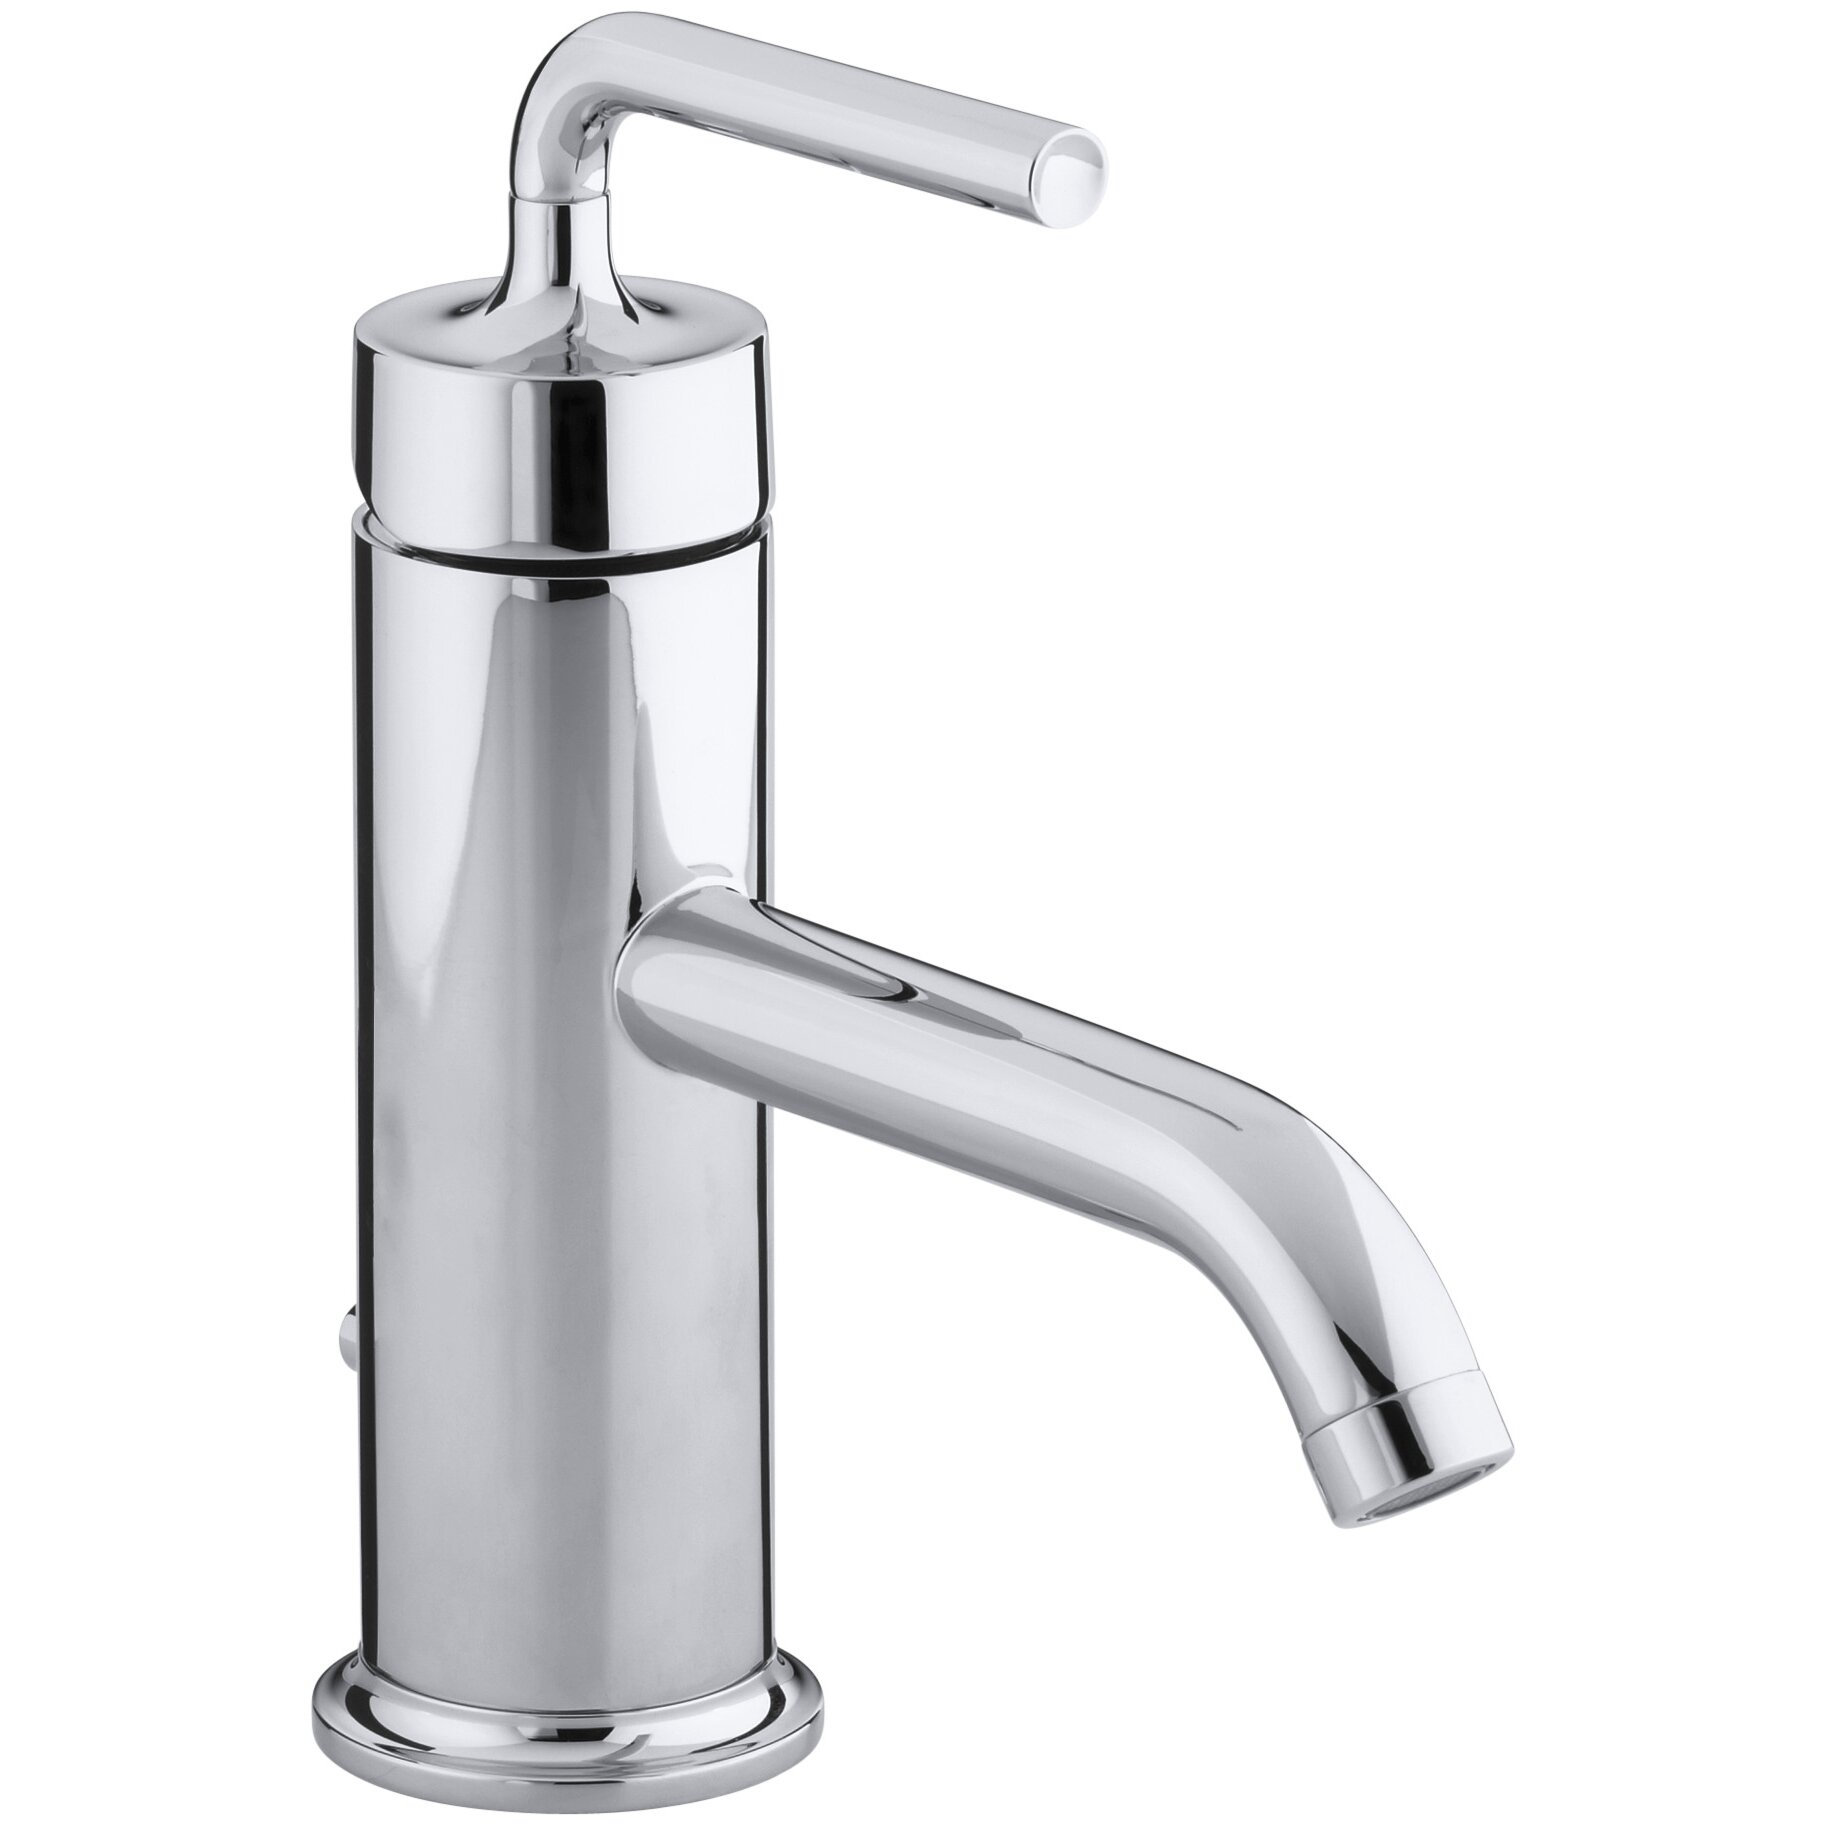 Single Hole Tub Faucet : Purist Single-Hole Bathroom Sink Faucet with Straight Lever Handle by ...